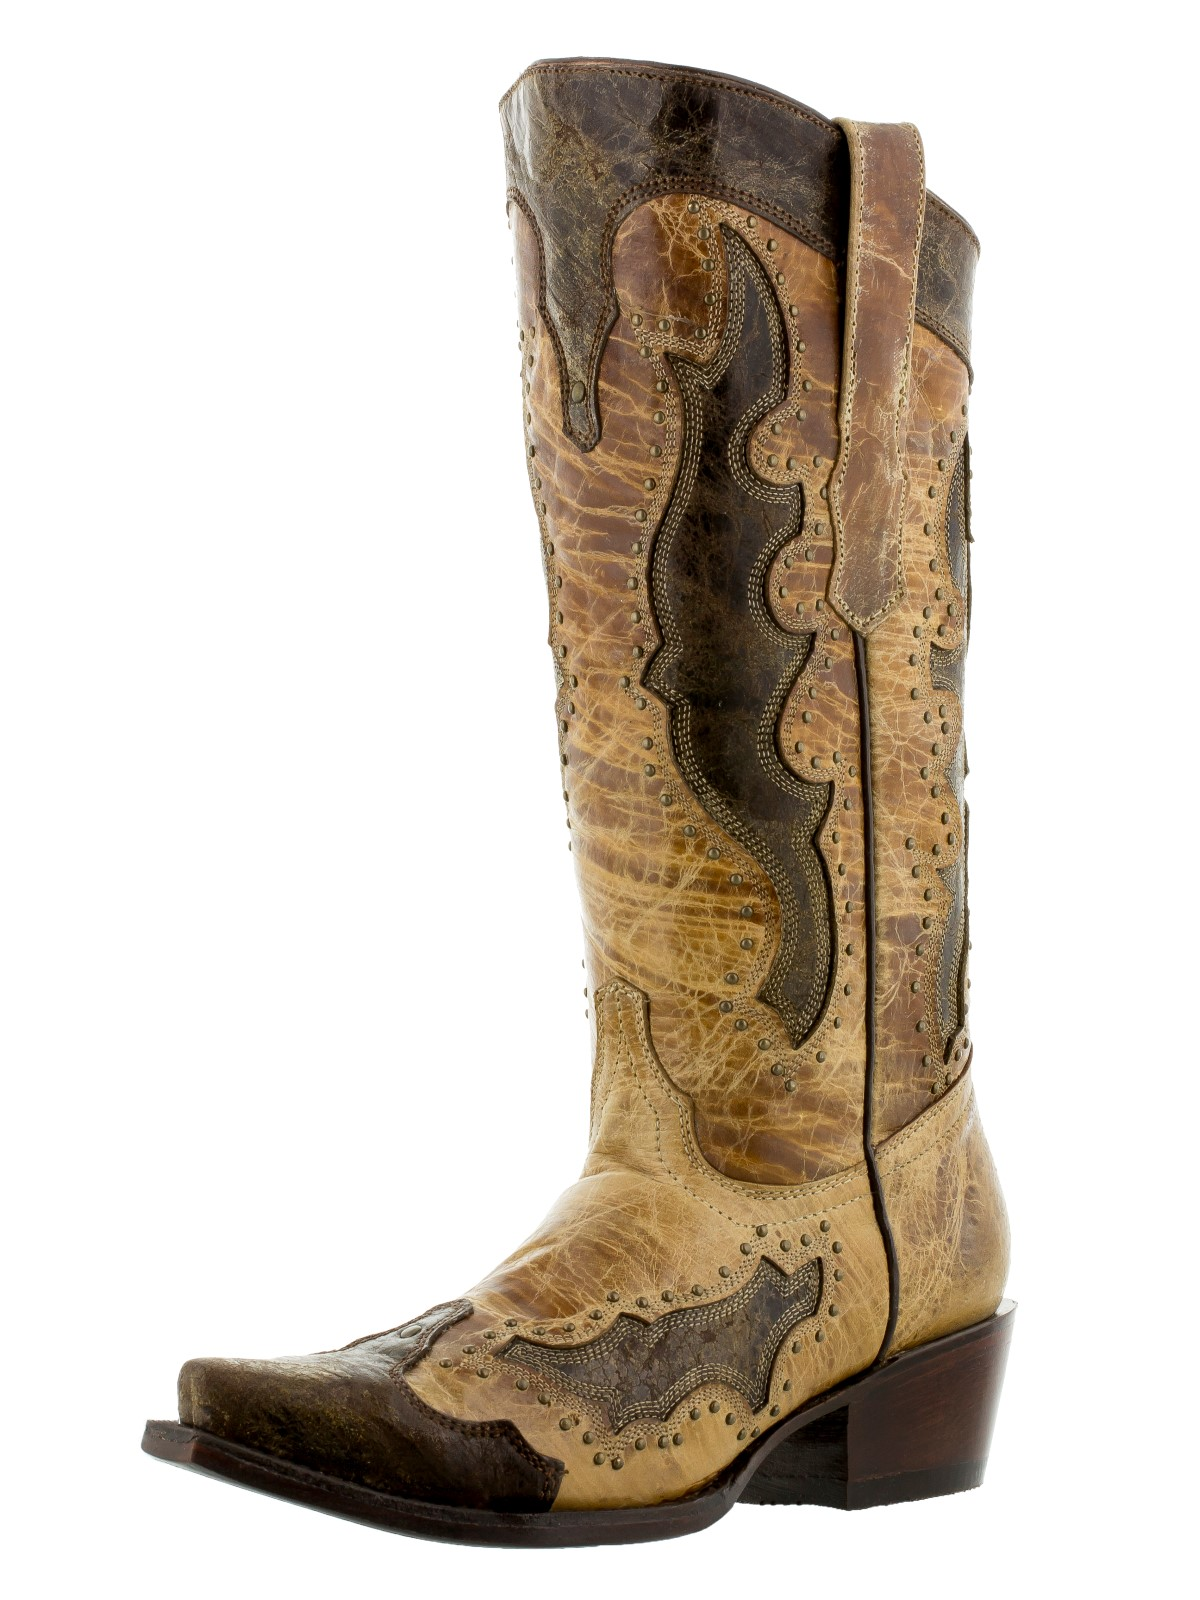 womens distressed sand leather cowboy gold studs